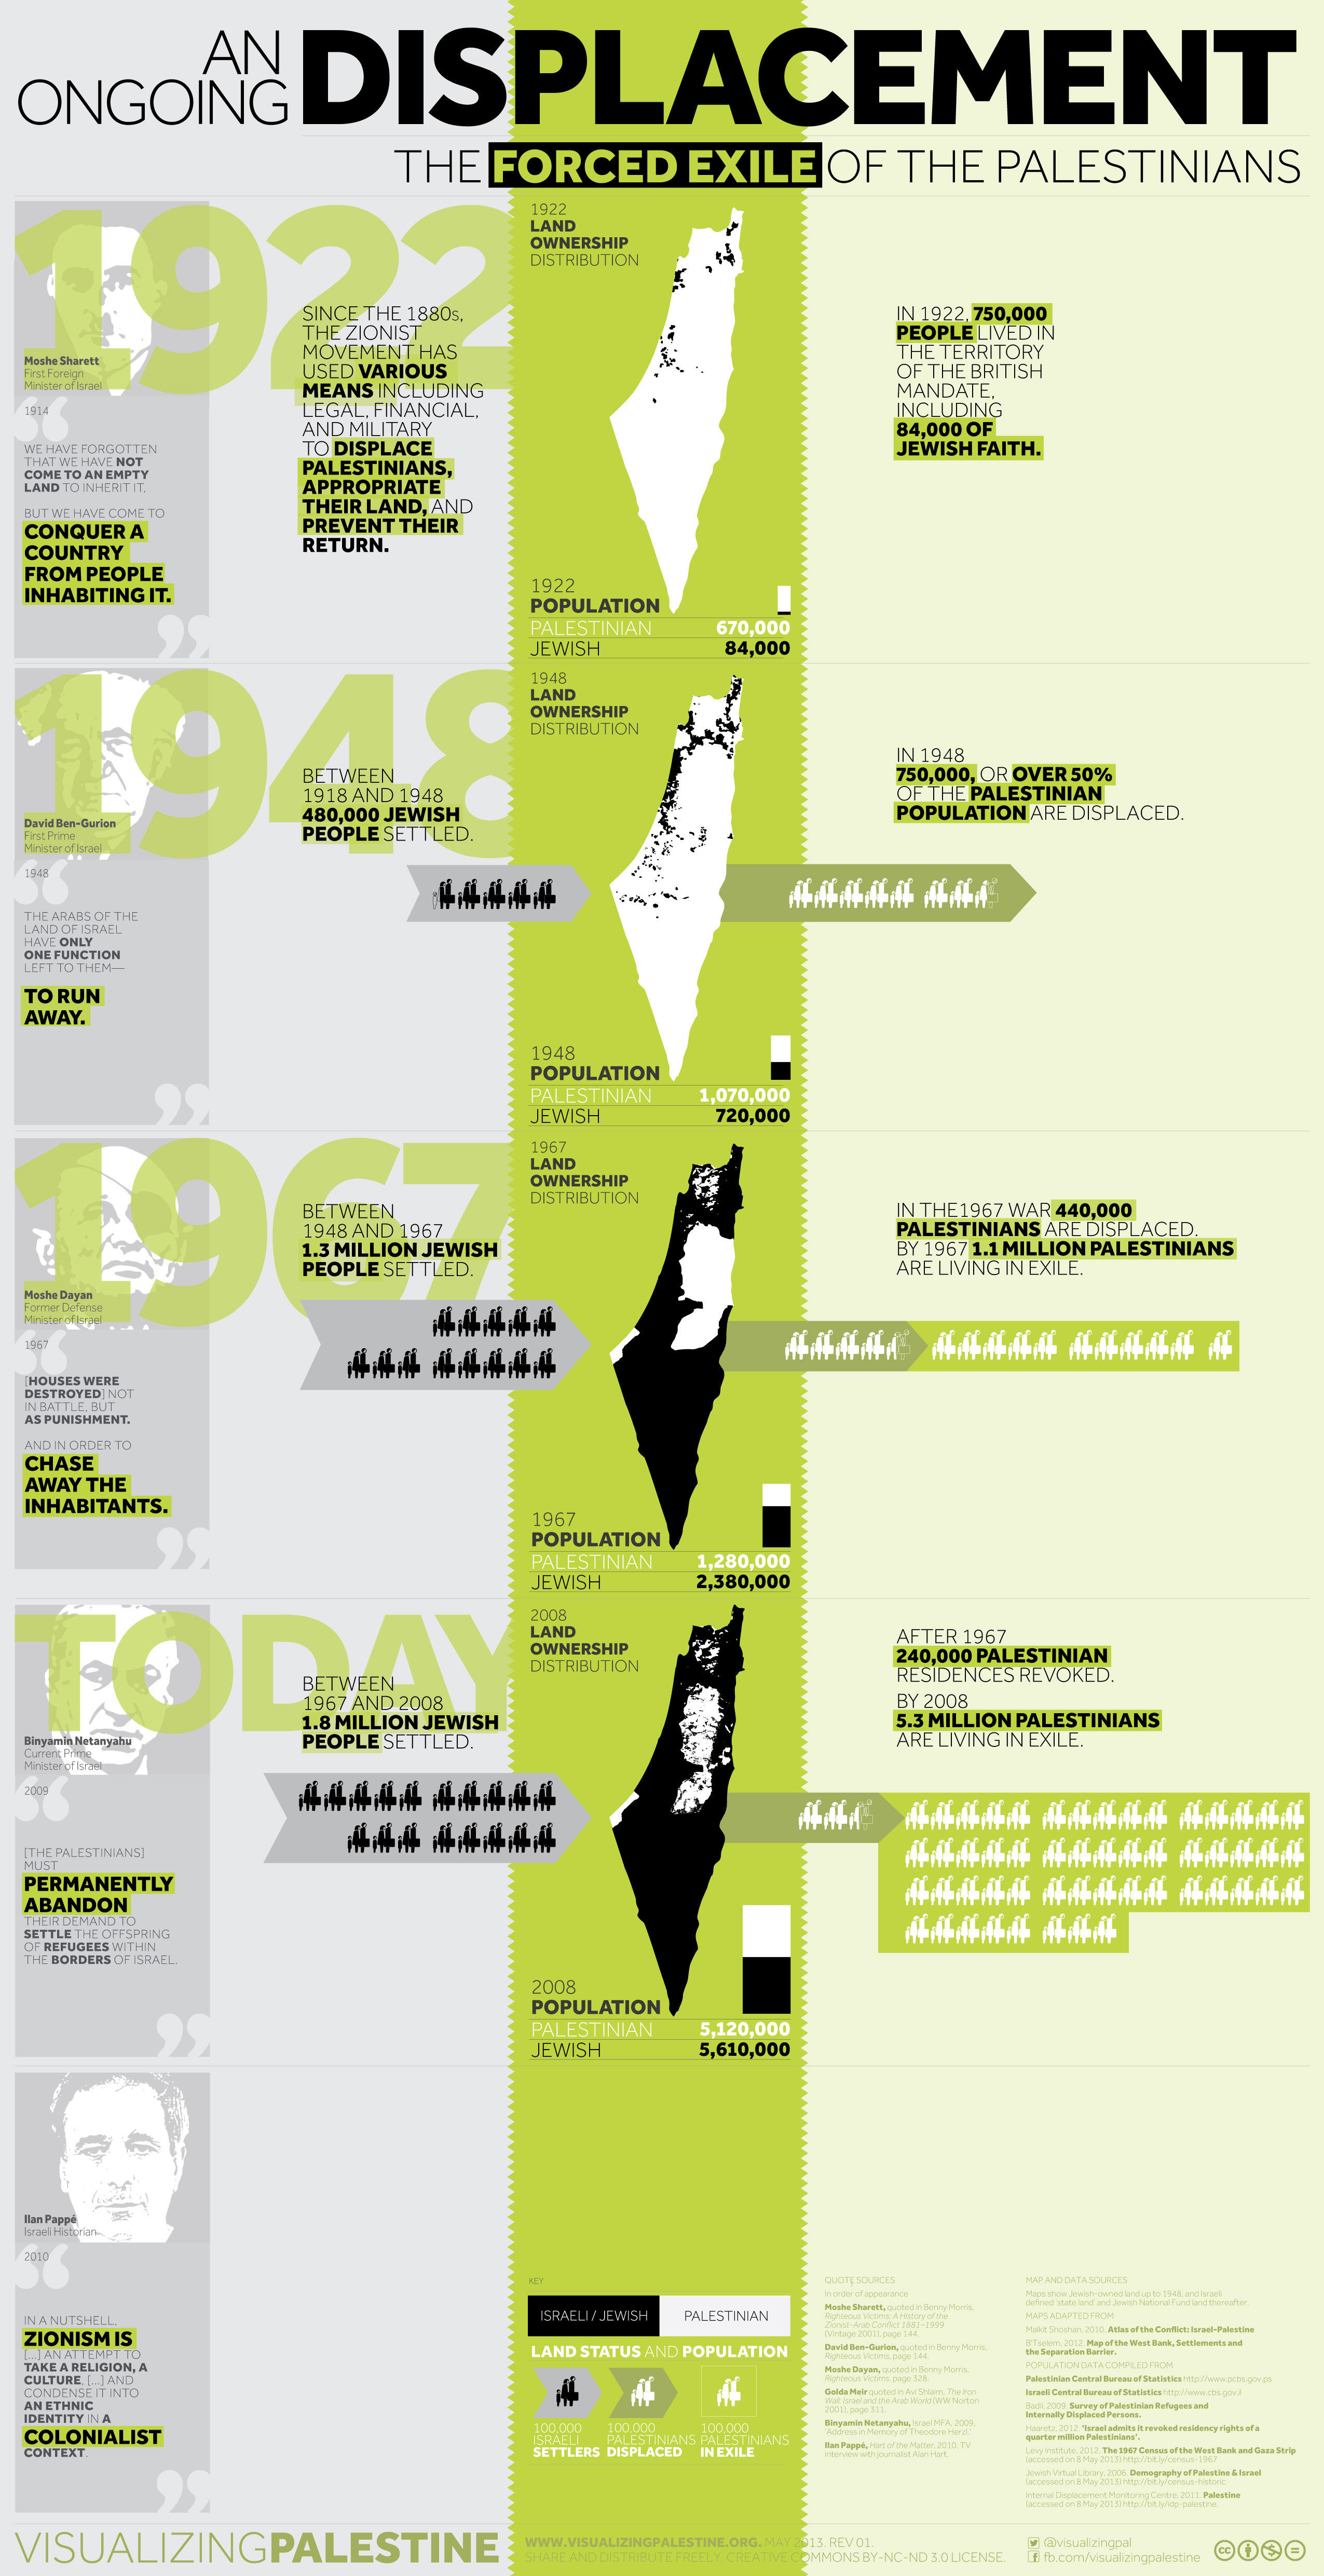 An Ongoing Displacement - The Forced Exile of the Palestinians